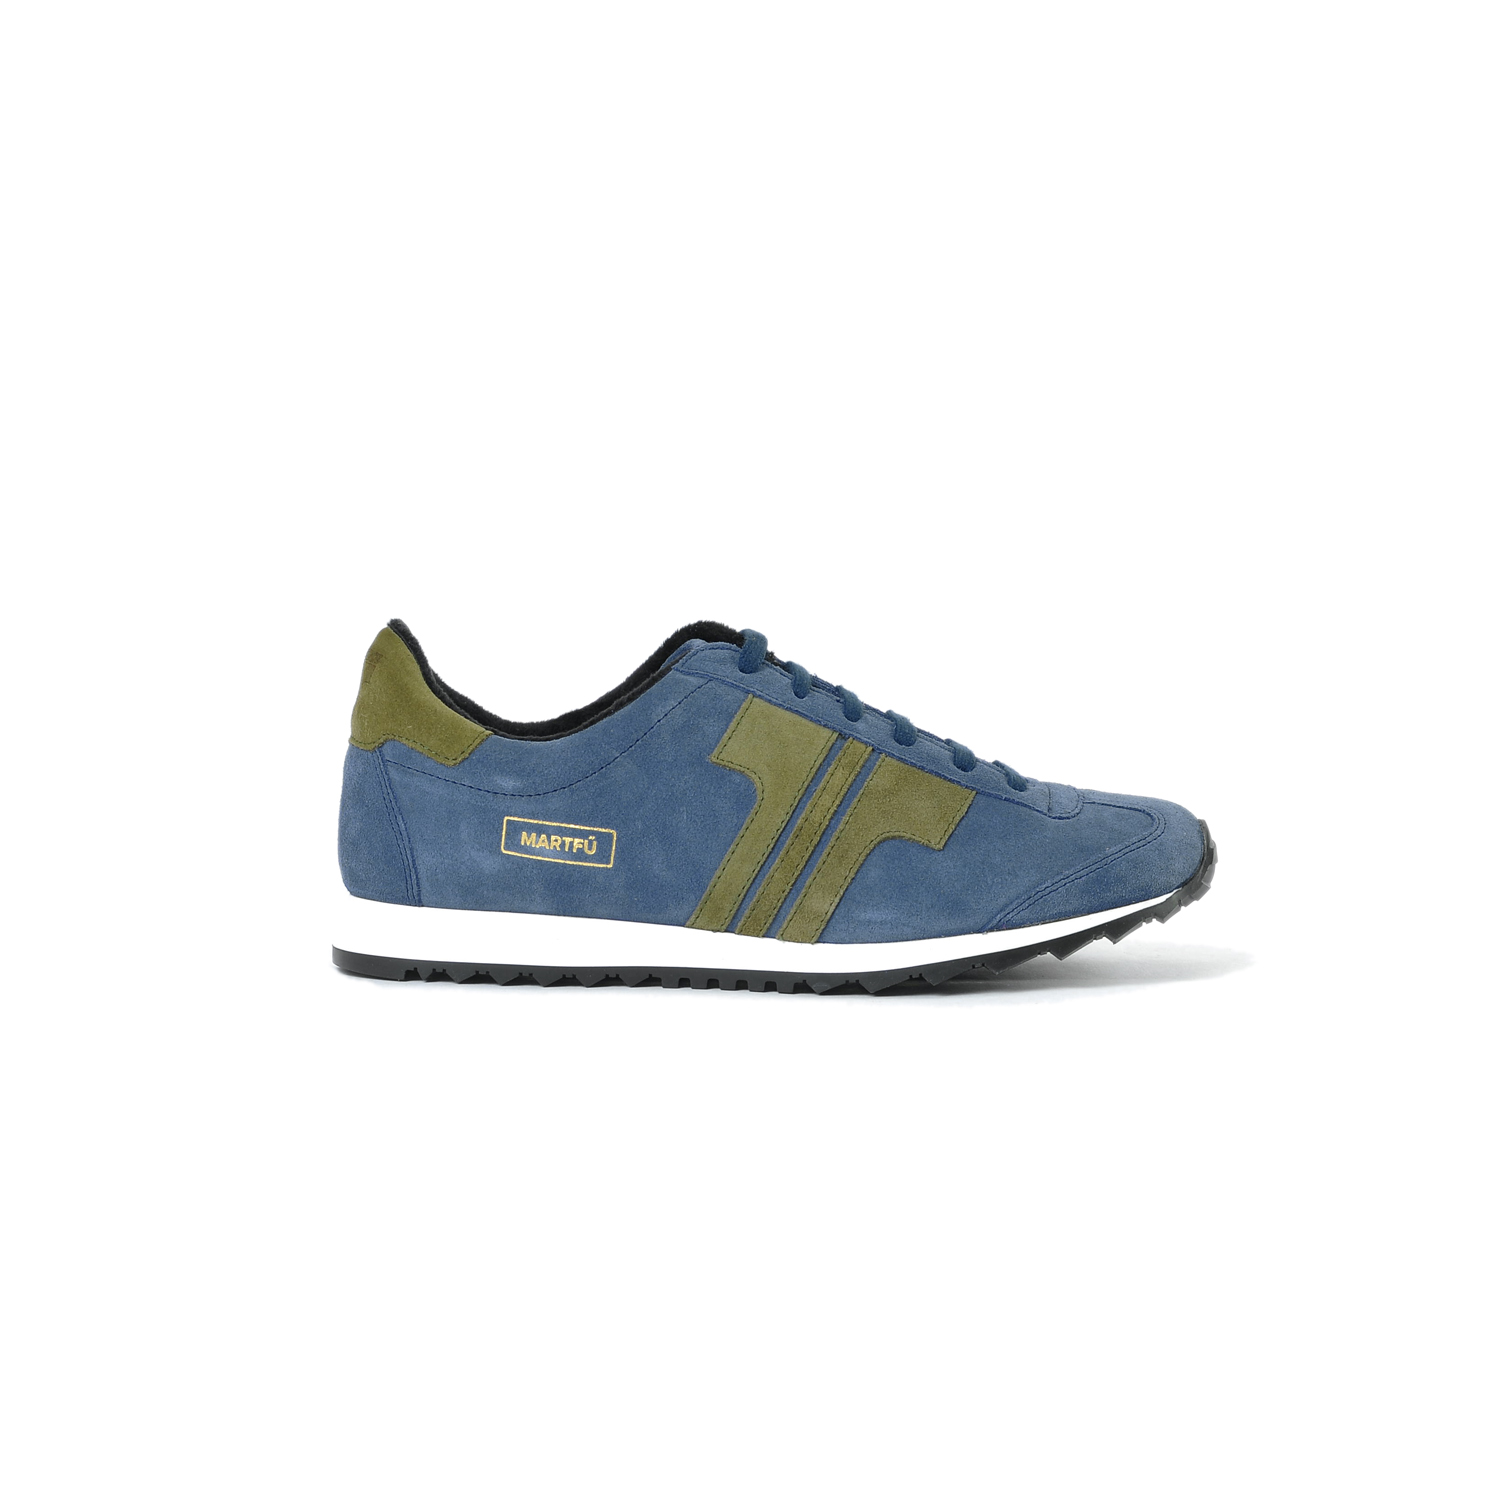 Tisza shoes - Martfű - Navy-khaki padded